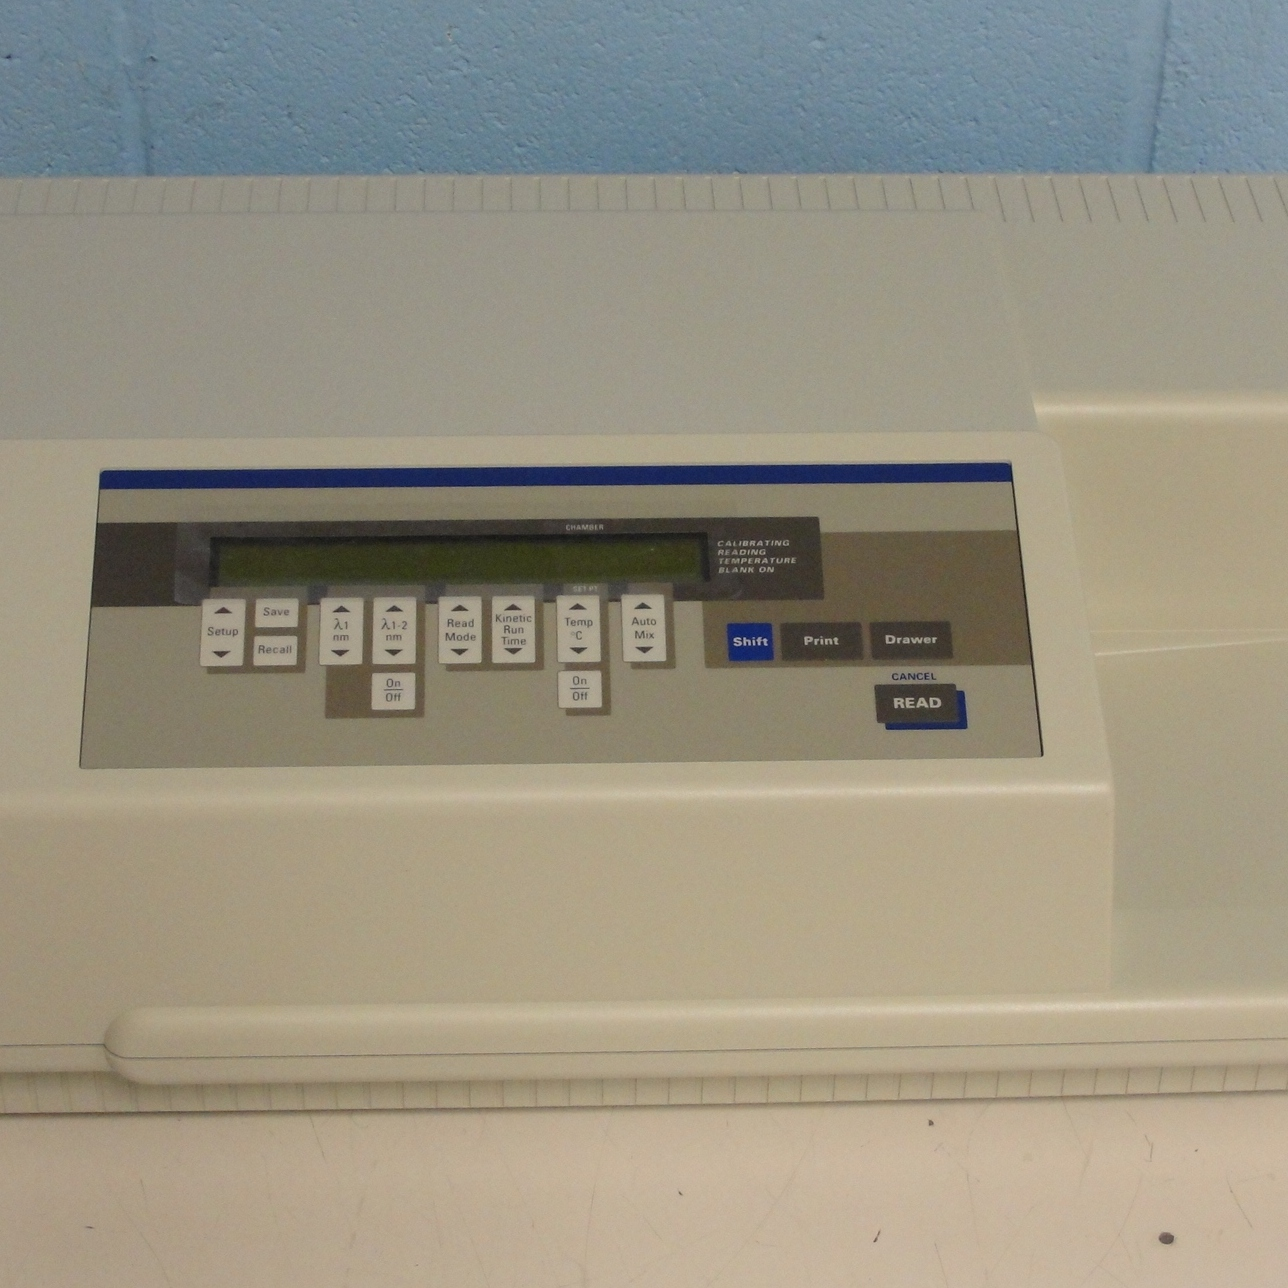 SpectraMax 190 Absorbance Microplate Reader